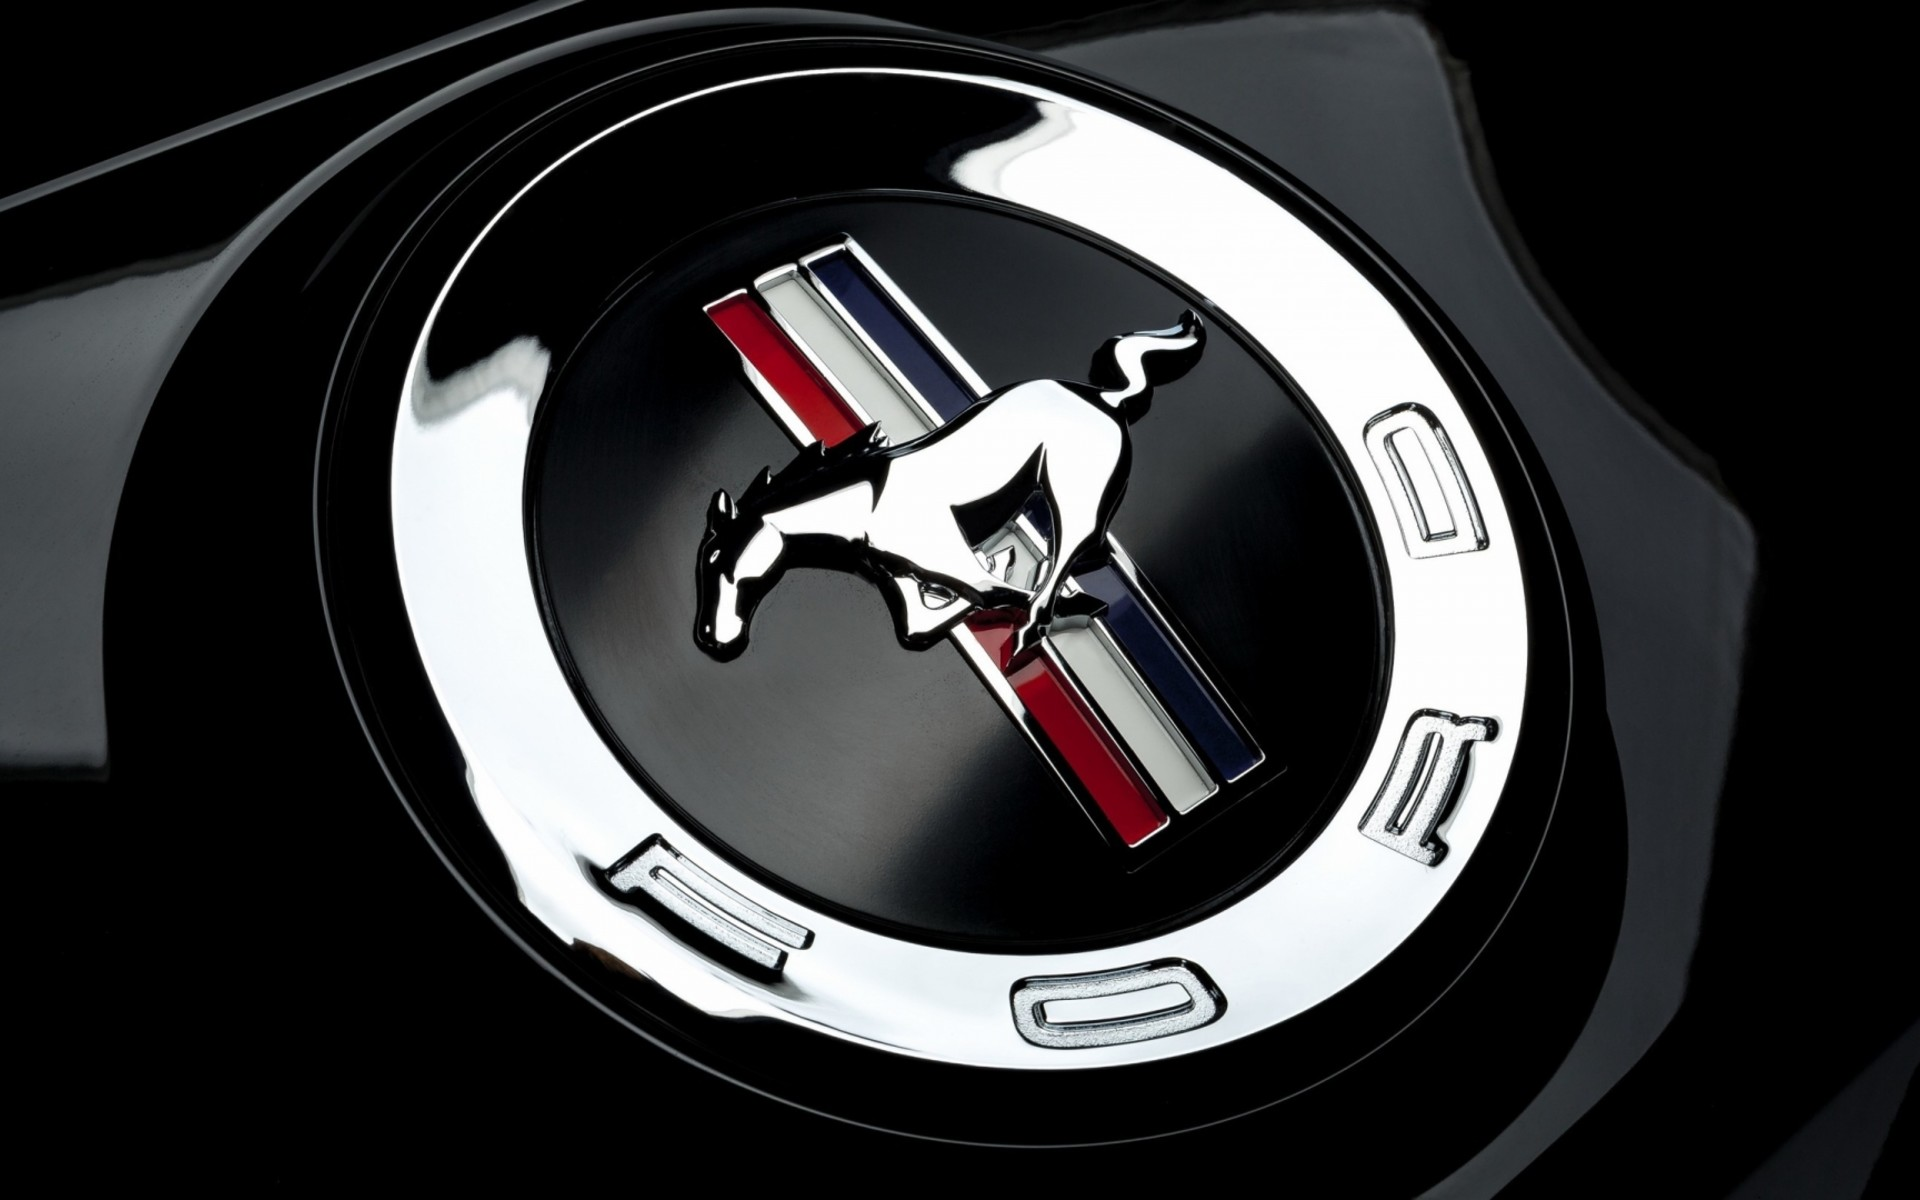 Ford Mustang logo Wallpaper HD 3D Wallpaper